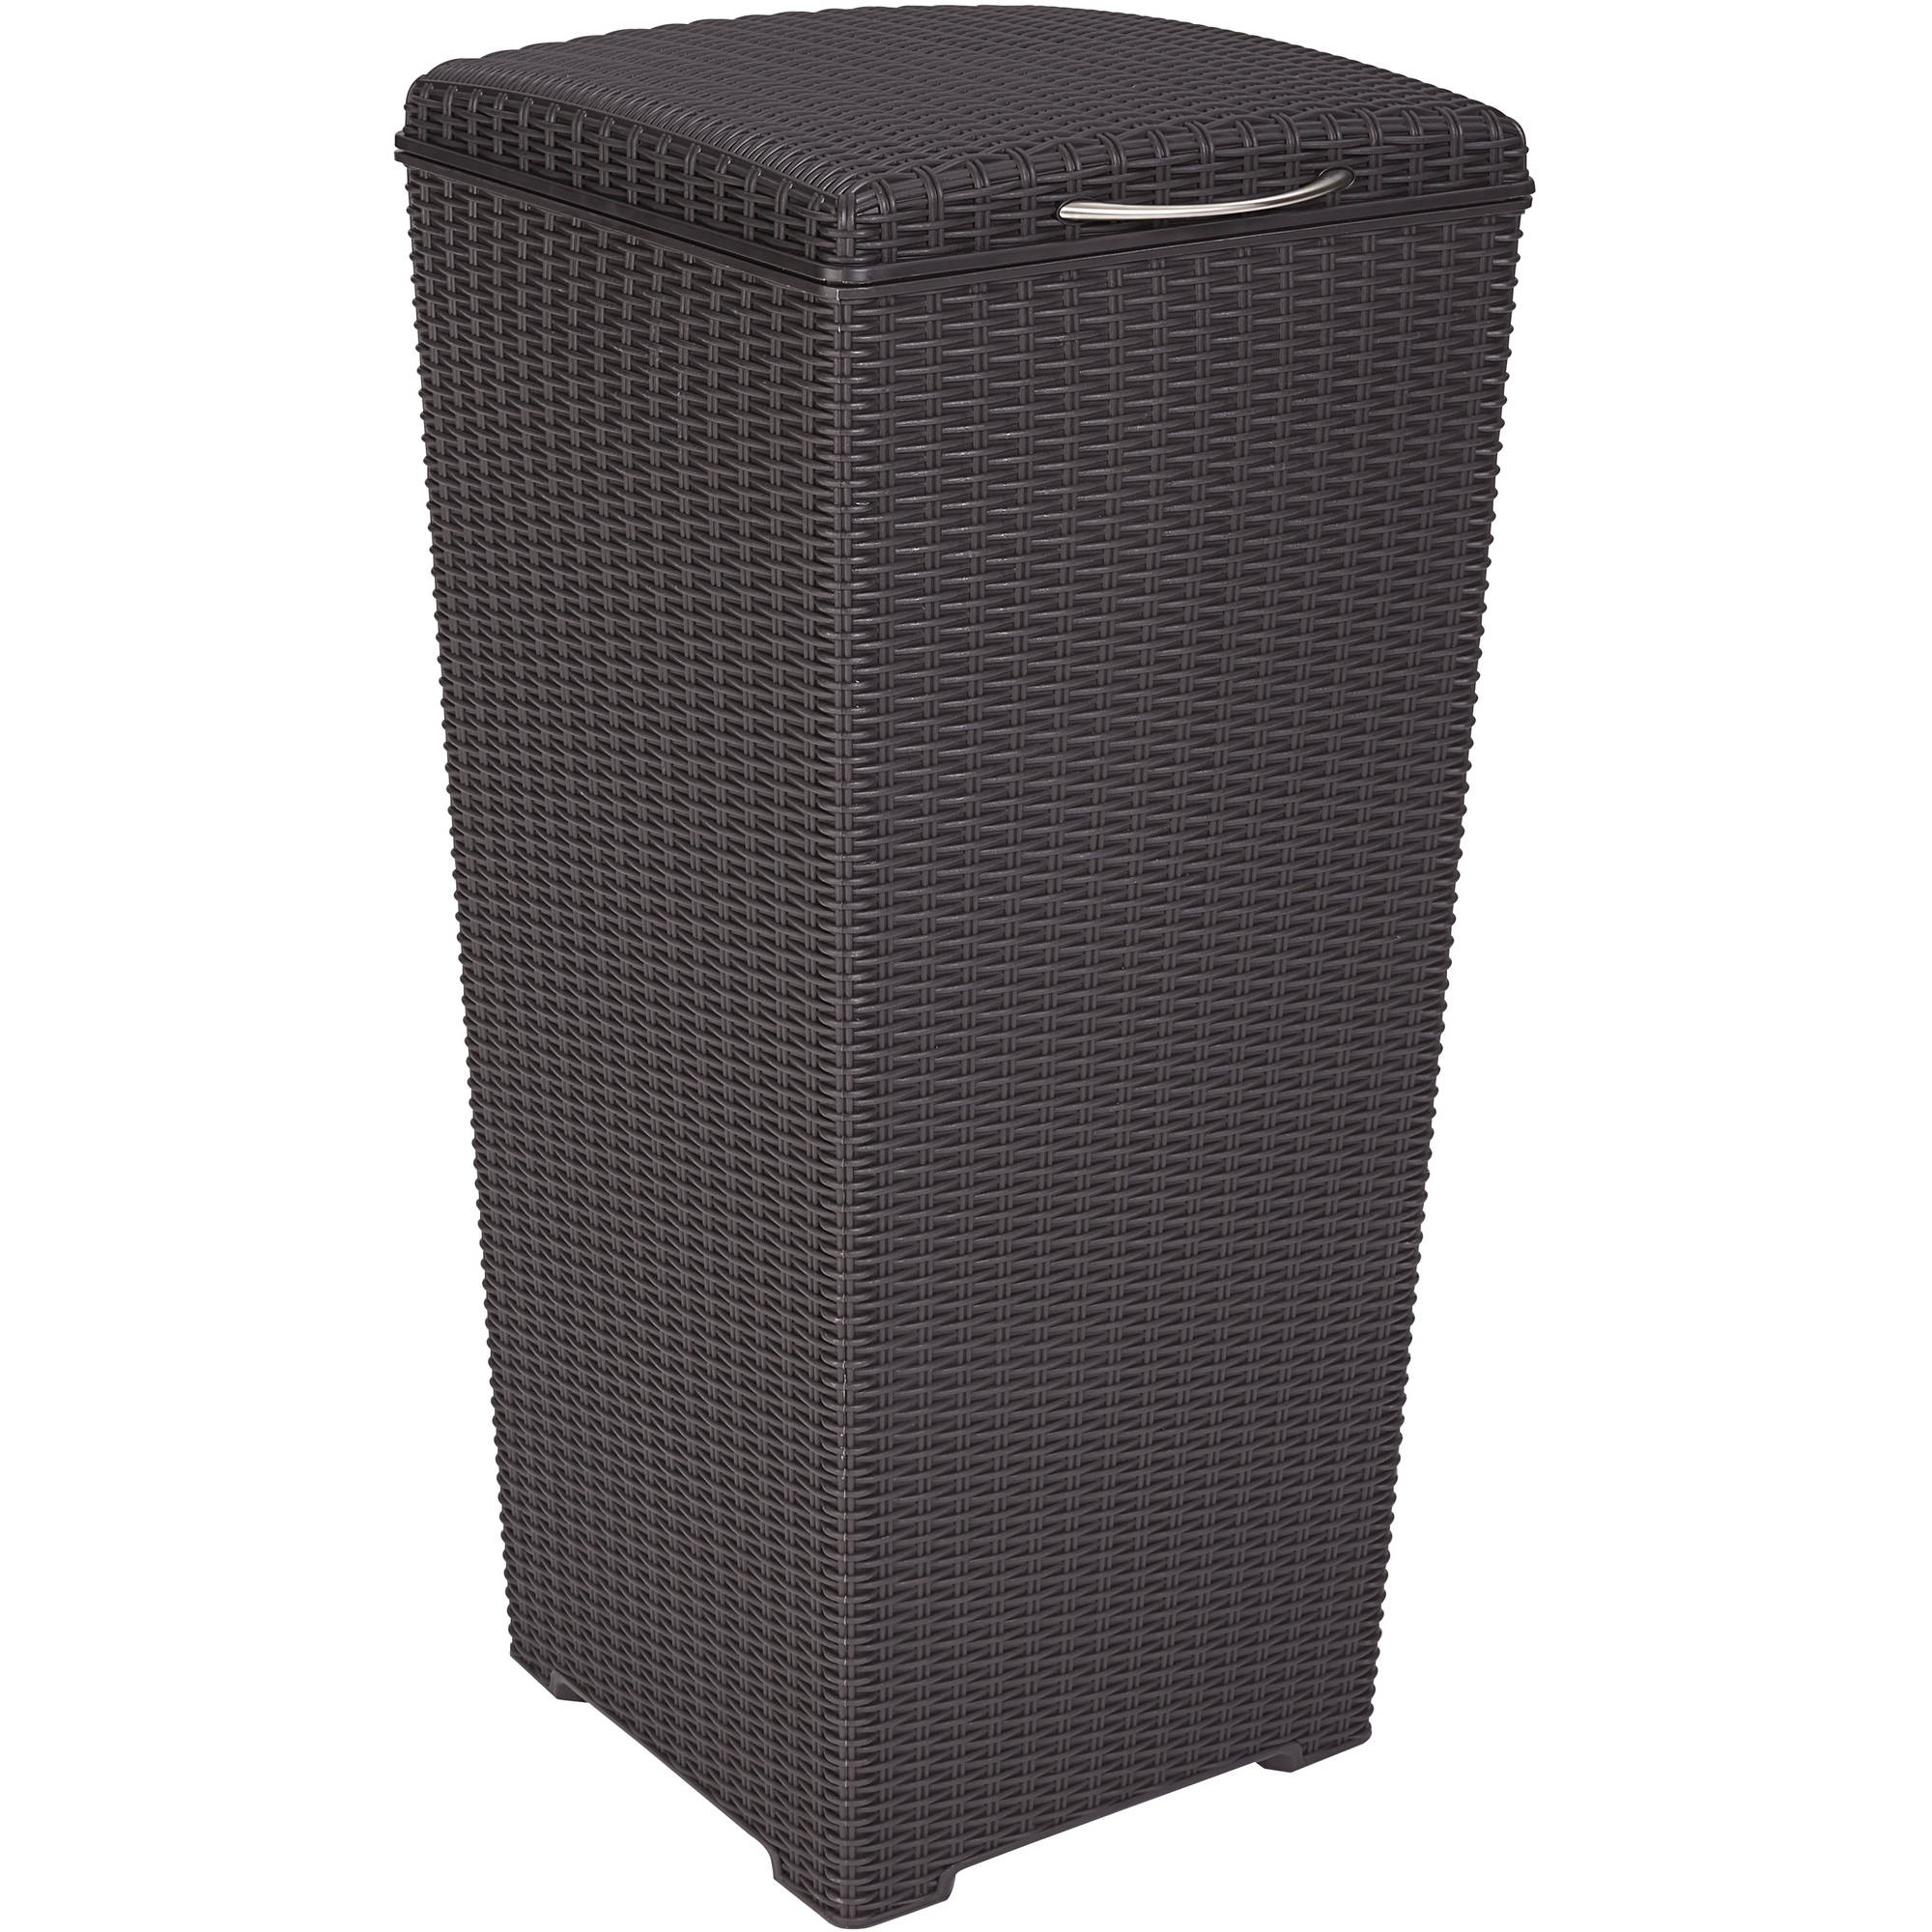 Keter Pacific 30-Gallon Resin Plastic Wicker Outdoor Waste Bin with Liner